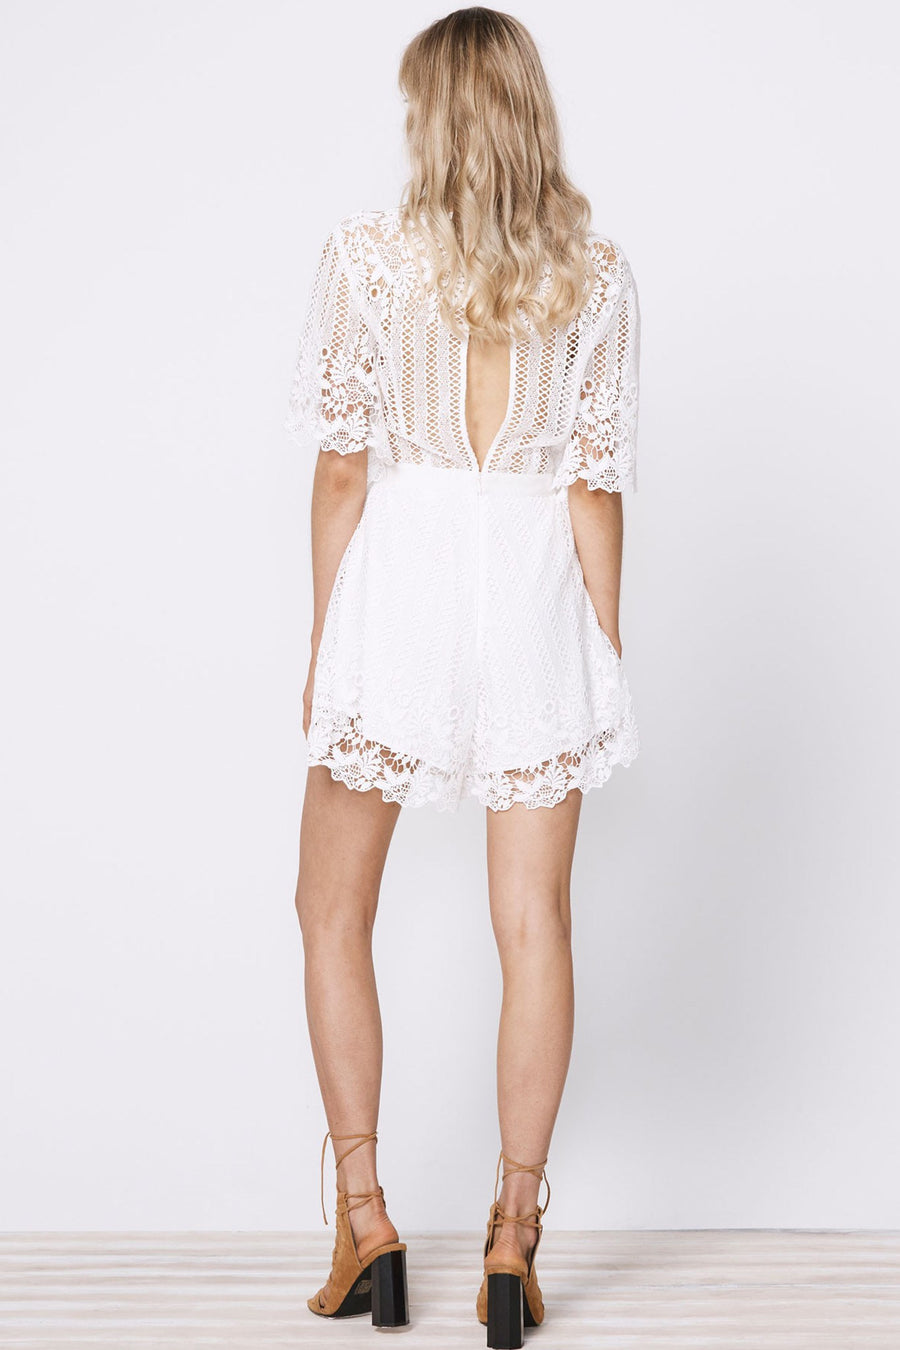 violante-playsuit-by-stevie-may